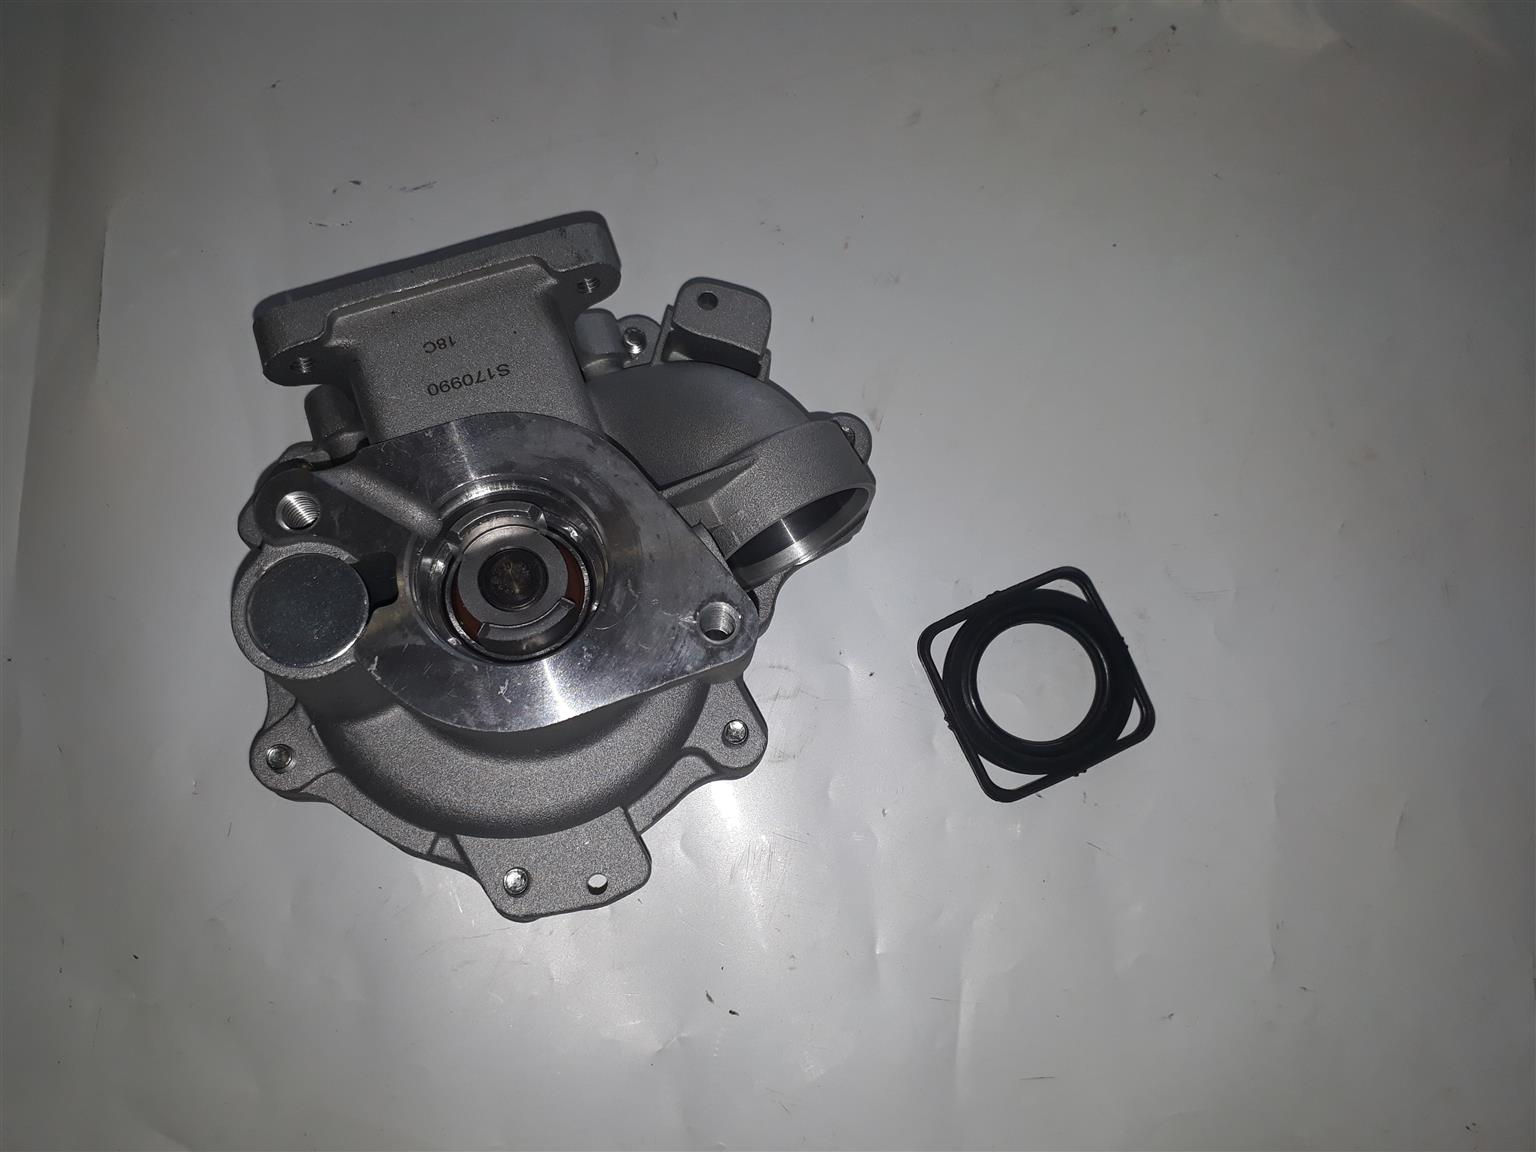 BMW E46 318 Facelift And E90 320 Water Pump